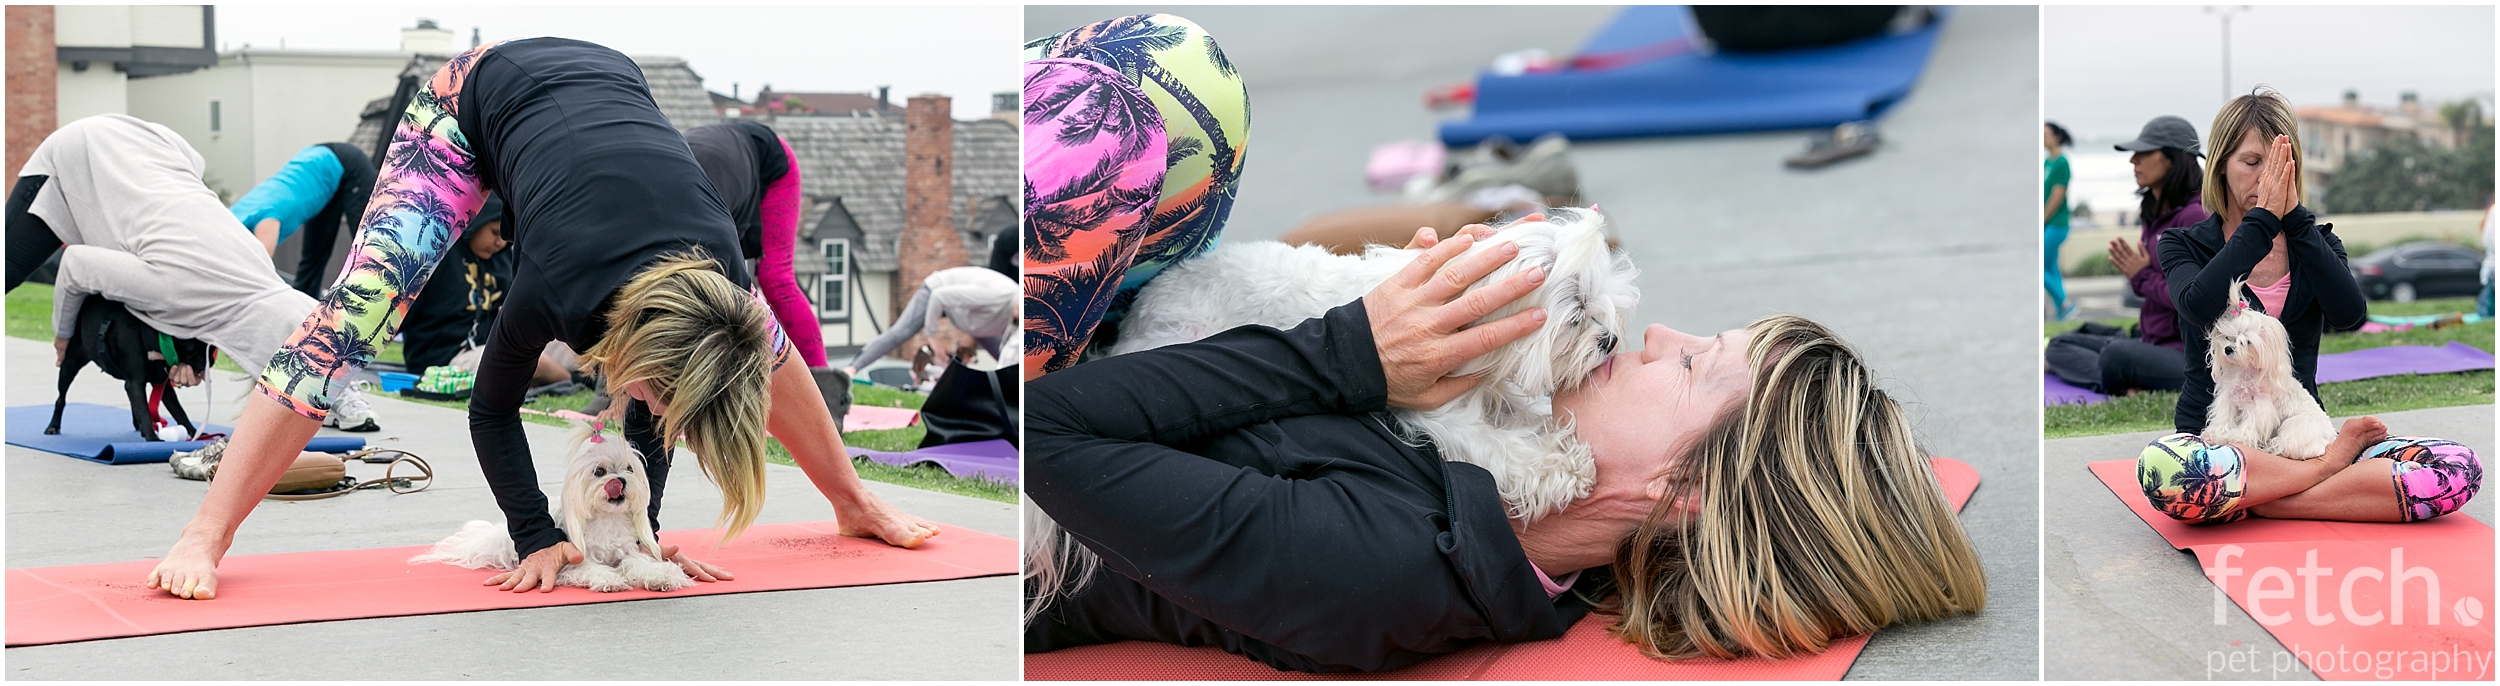 exercise-with-your-dog